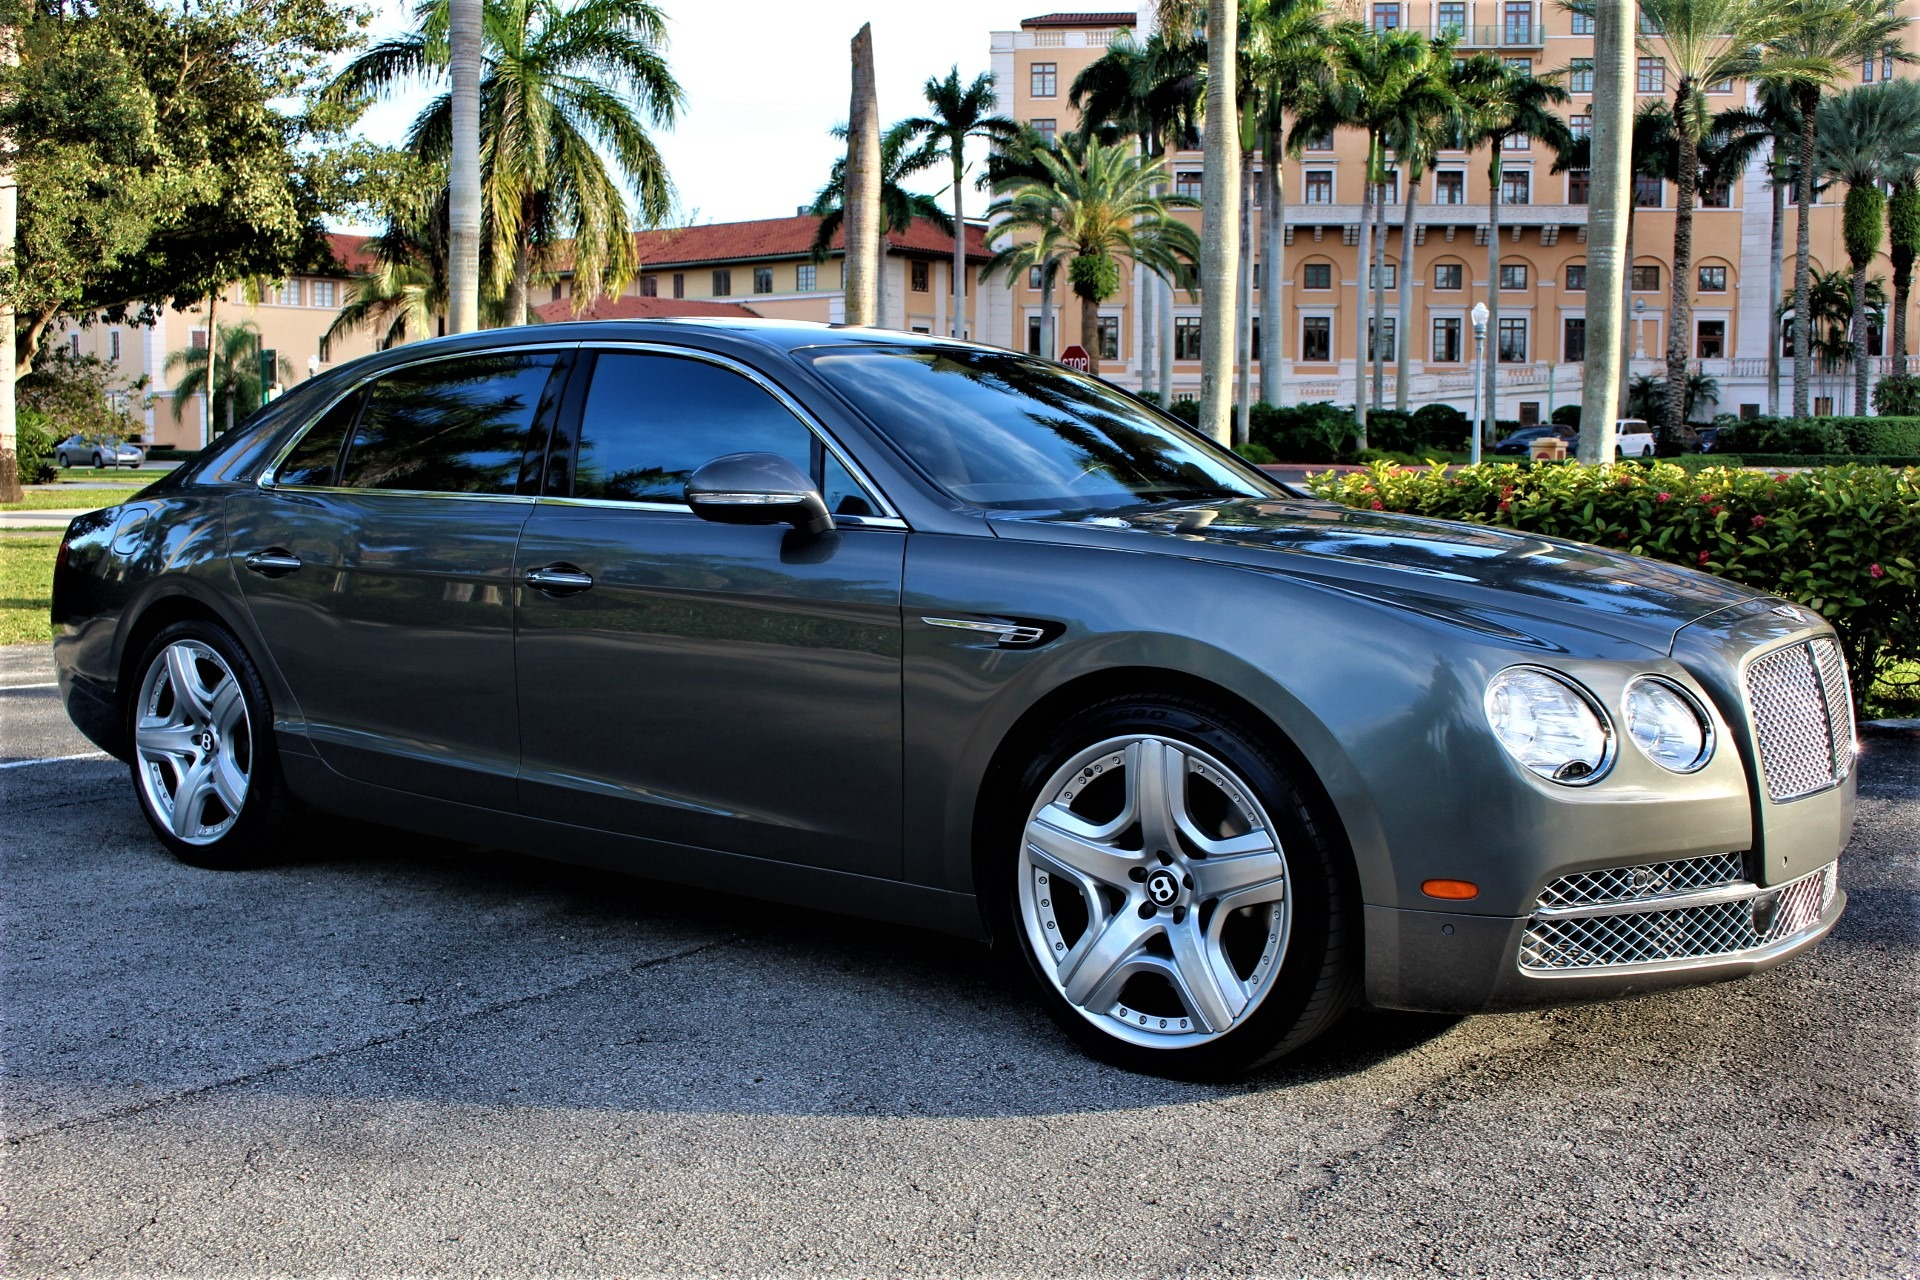 Used 2014 Bentley Flying Spur for sale Sold at The Gables Sports Cars in Miami FL 33146 3